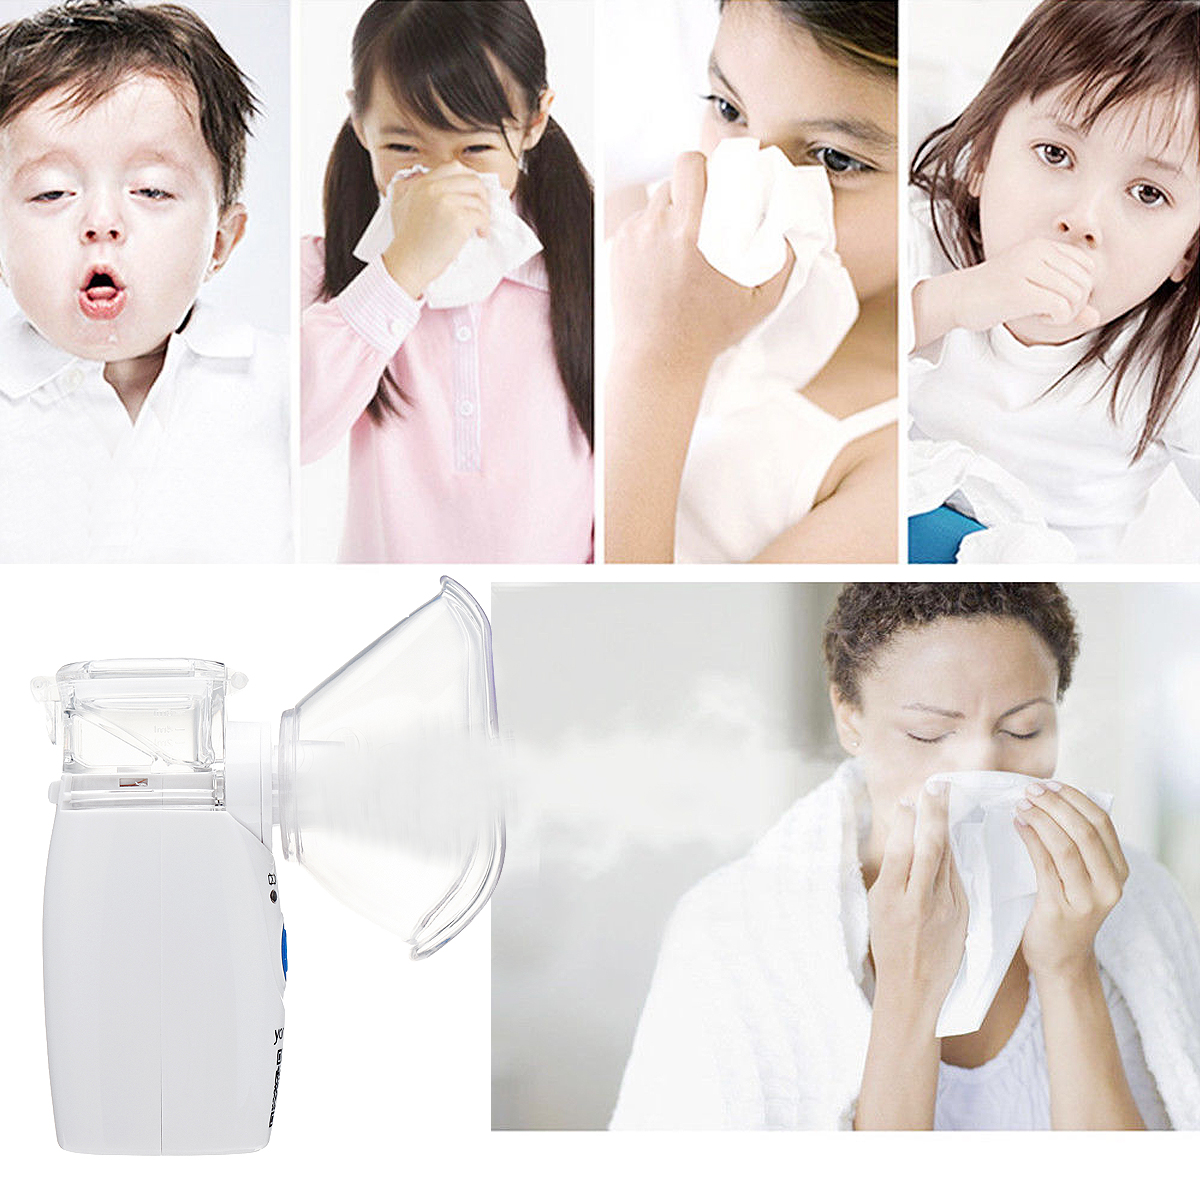 220V Portable Ultrasonic Nebulizer for Asthma and COPD 2